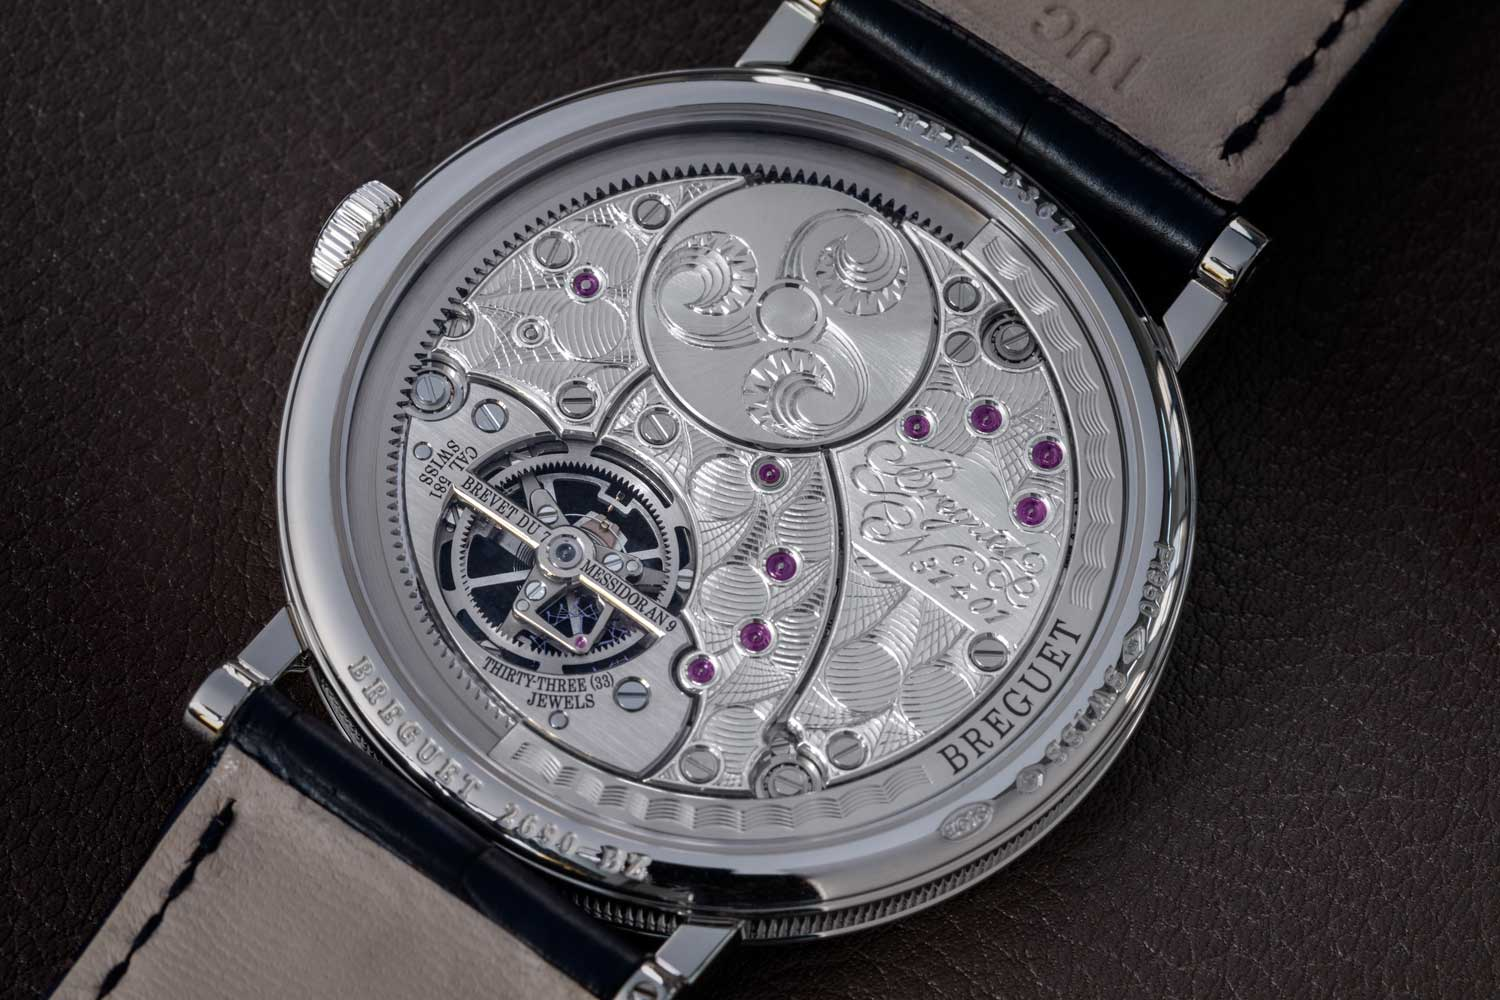 """The rear of the tourbillon bridge is engraved with """"Brevet Du 7 Messidor An 9"""", a reference to the Republican Calendar used in 1801. It's the date Breguet received the patent for his tourbillon mechanism.(©Revolution)"""